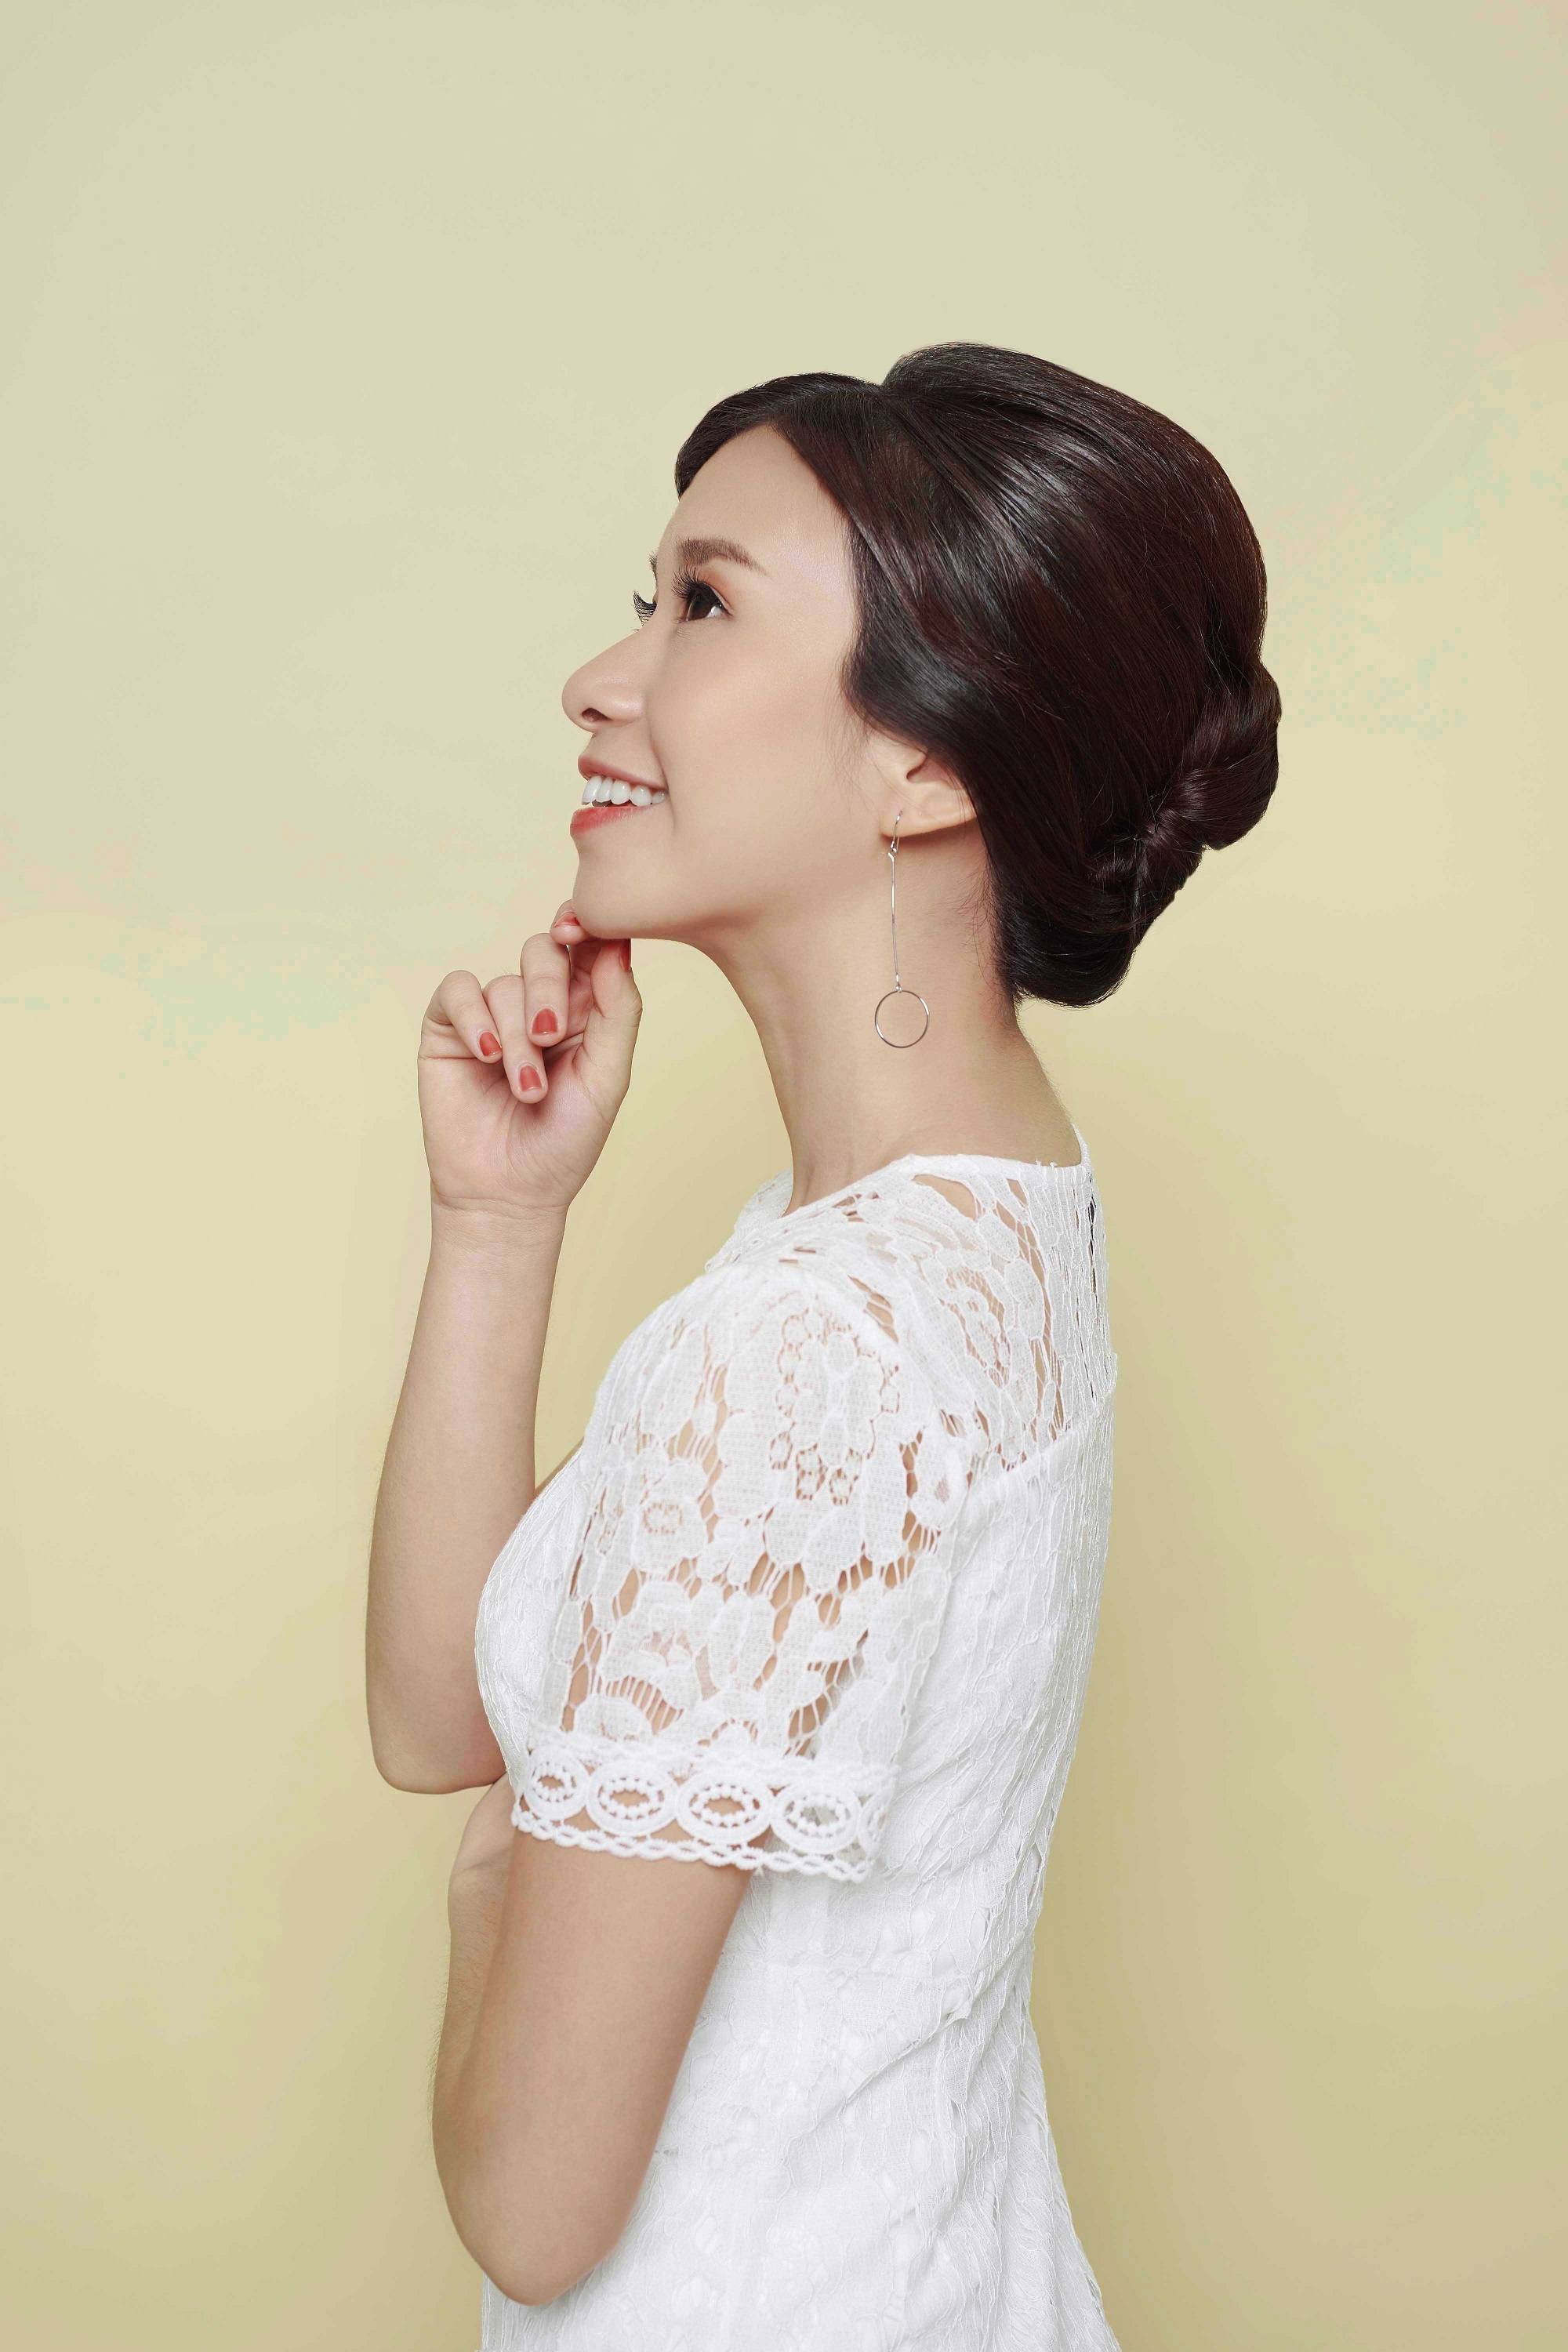 Elegant updos: Asian woman with French twist hair